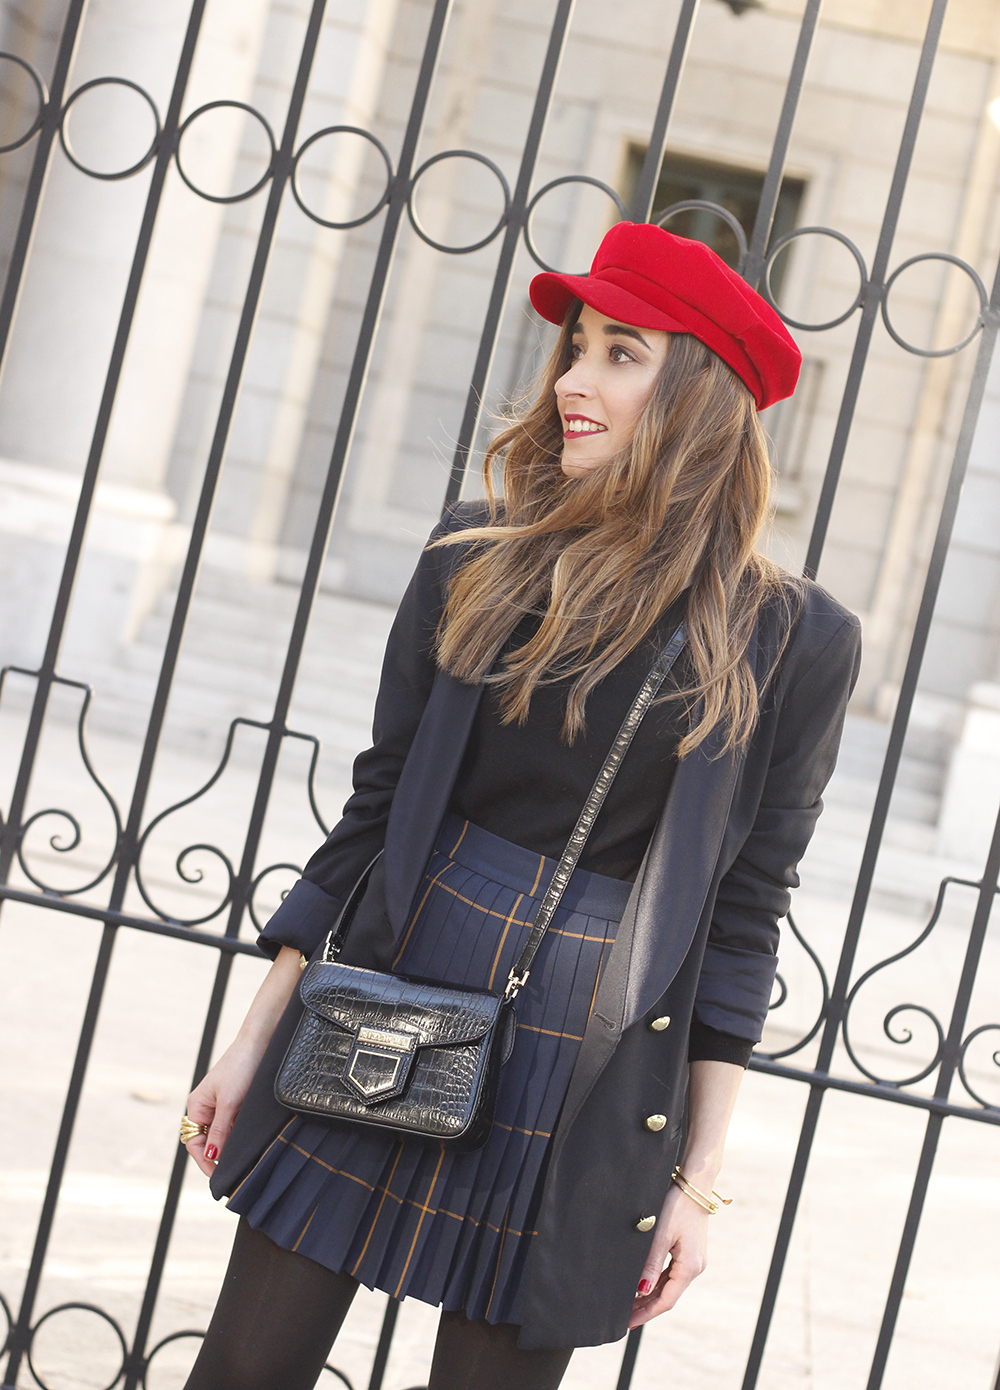 pleated skirt Scottish print Vichy print red navy cap givenchy bag winter outfit falda de tablas look invierno 201810